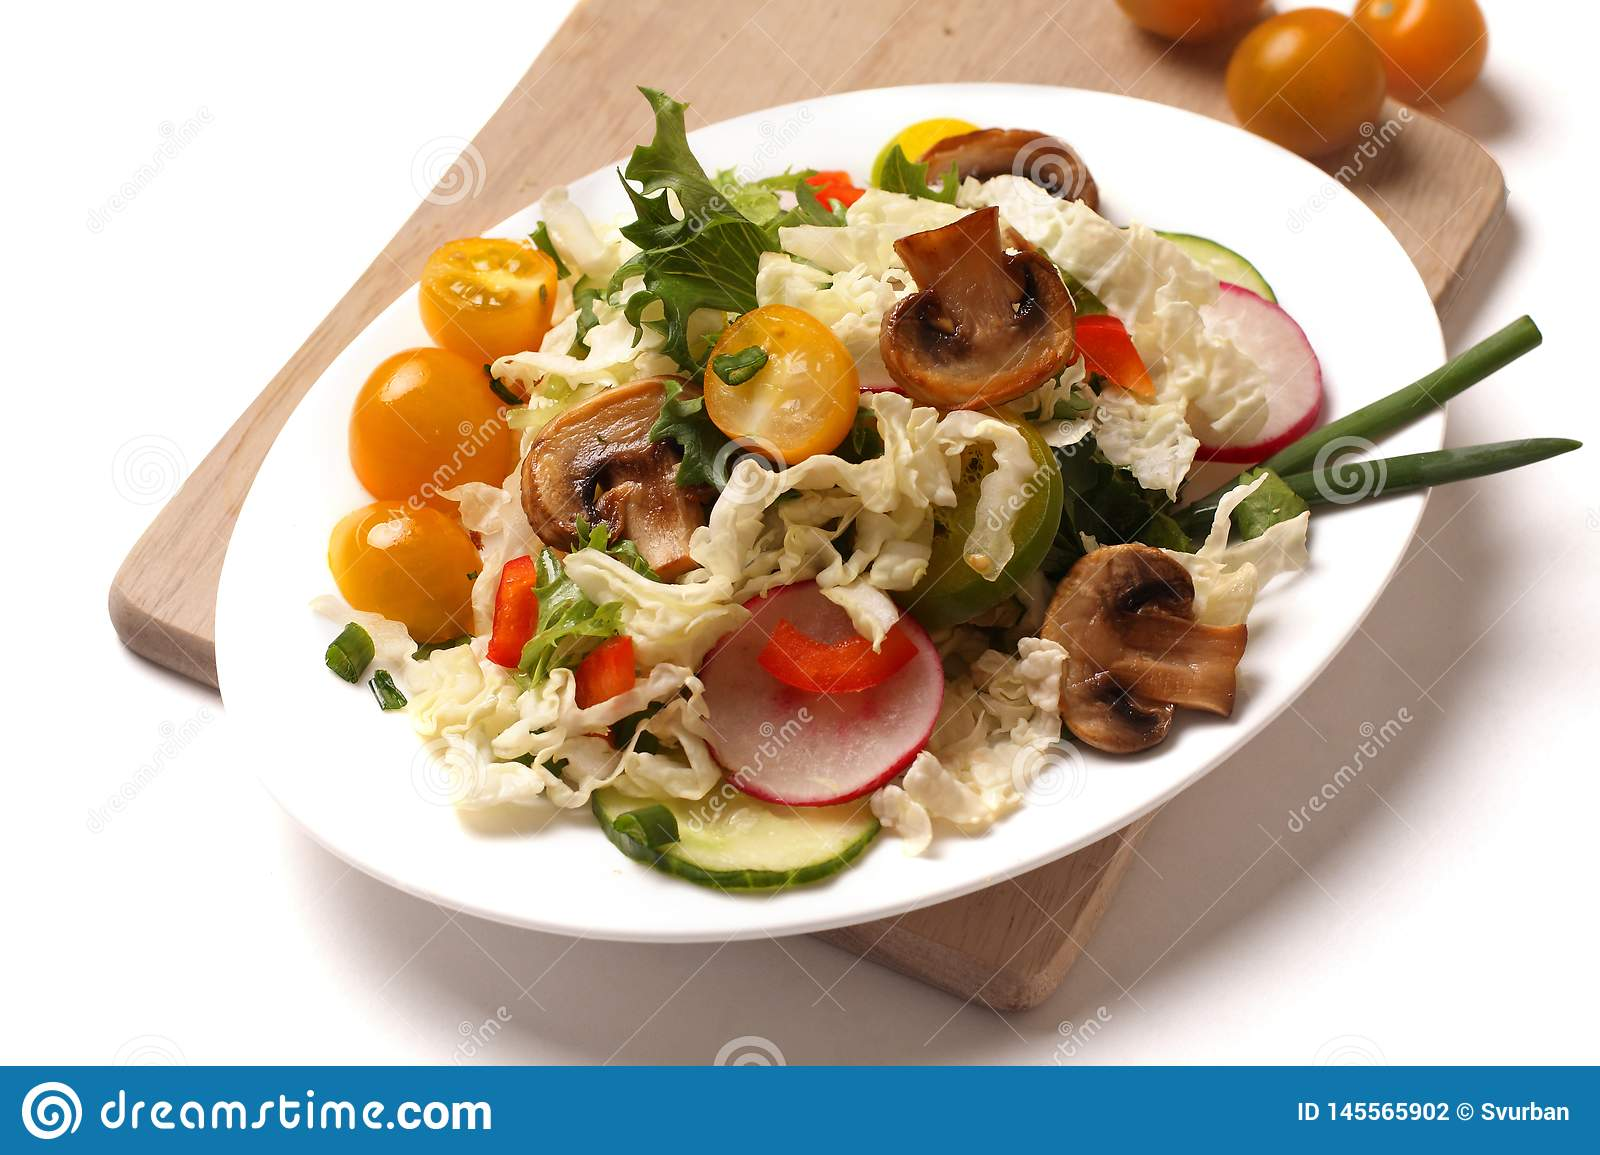 A plate of salad with vegetables, mushrooms and herbs